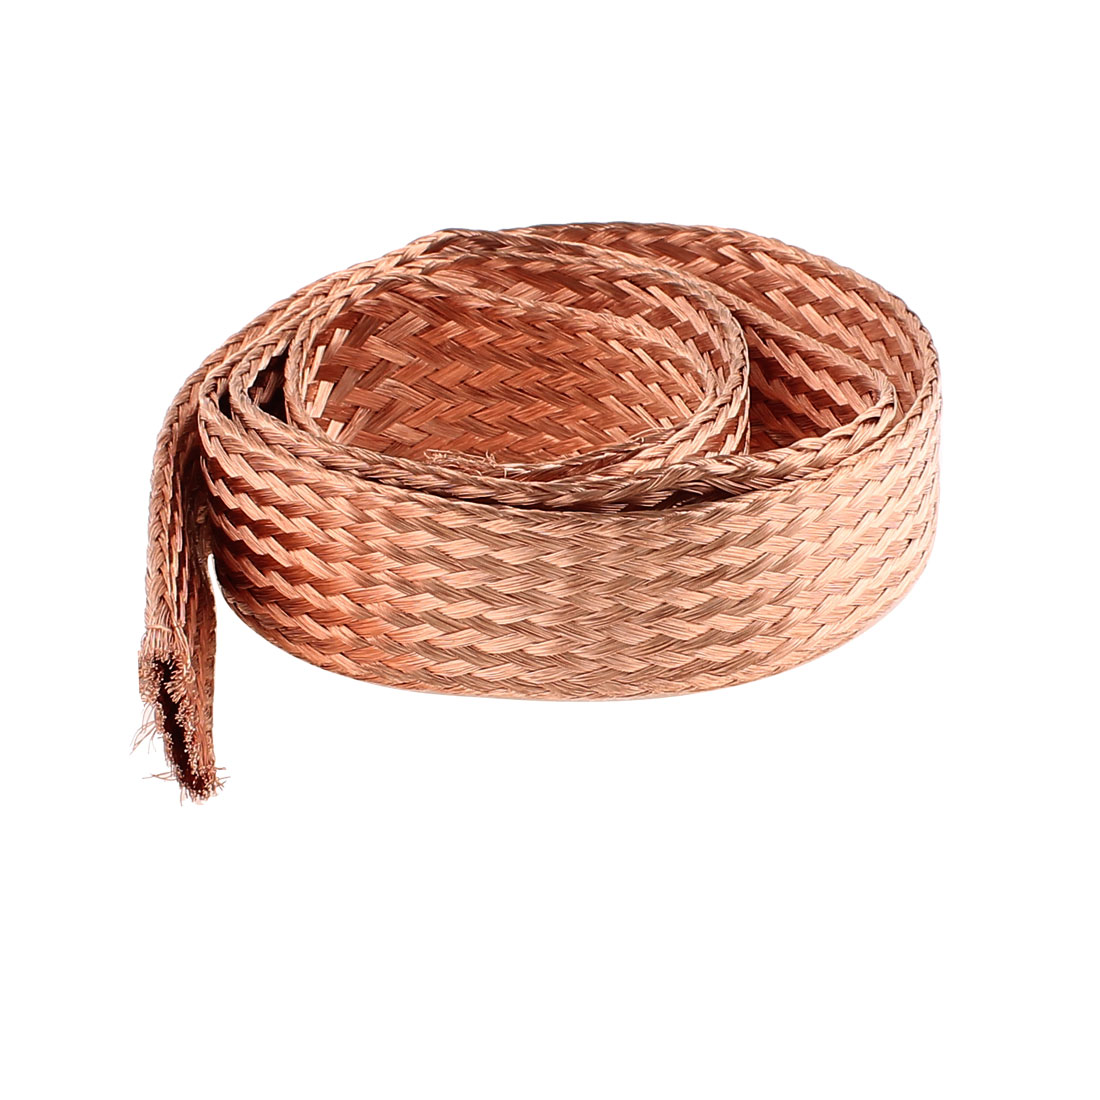 16 Square Millimeter Thickness 1M Length Flat Electrical Bare Braided Copper Wire